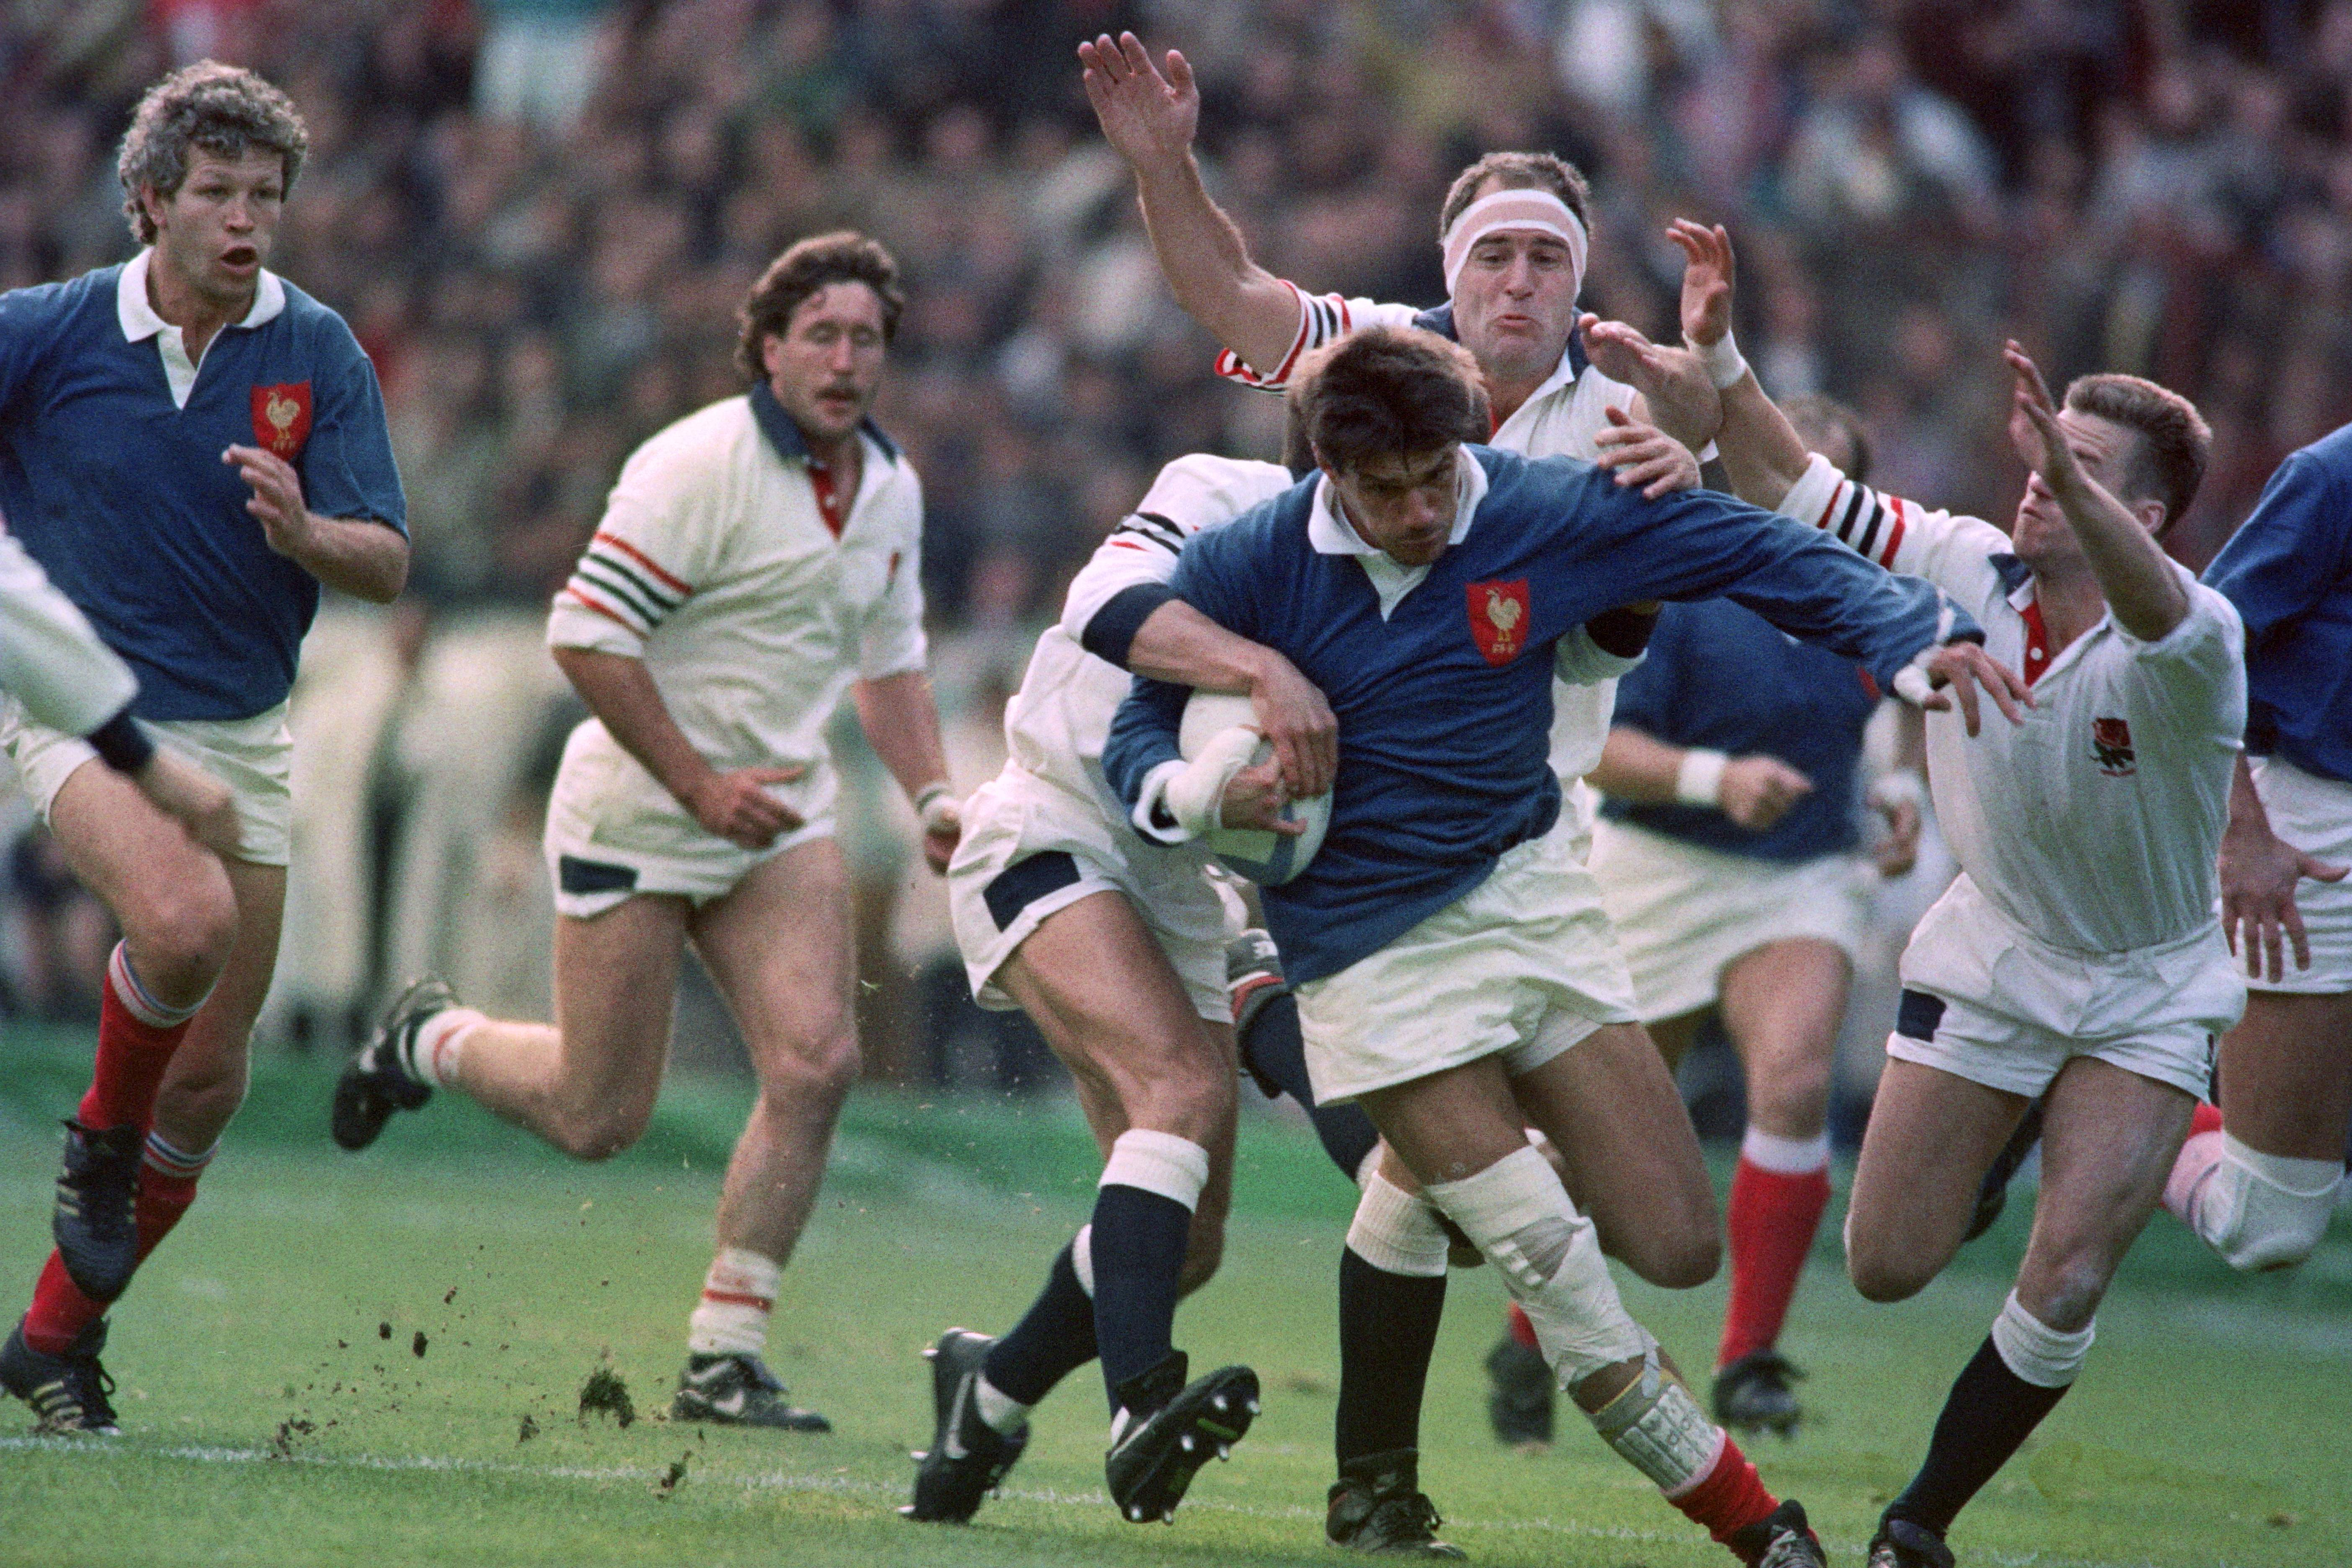 From Rugby World Cup 1991